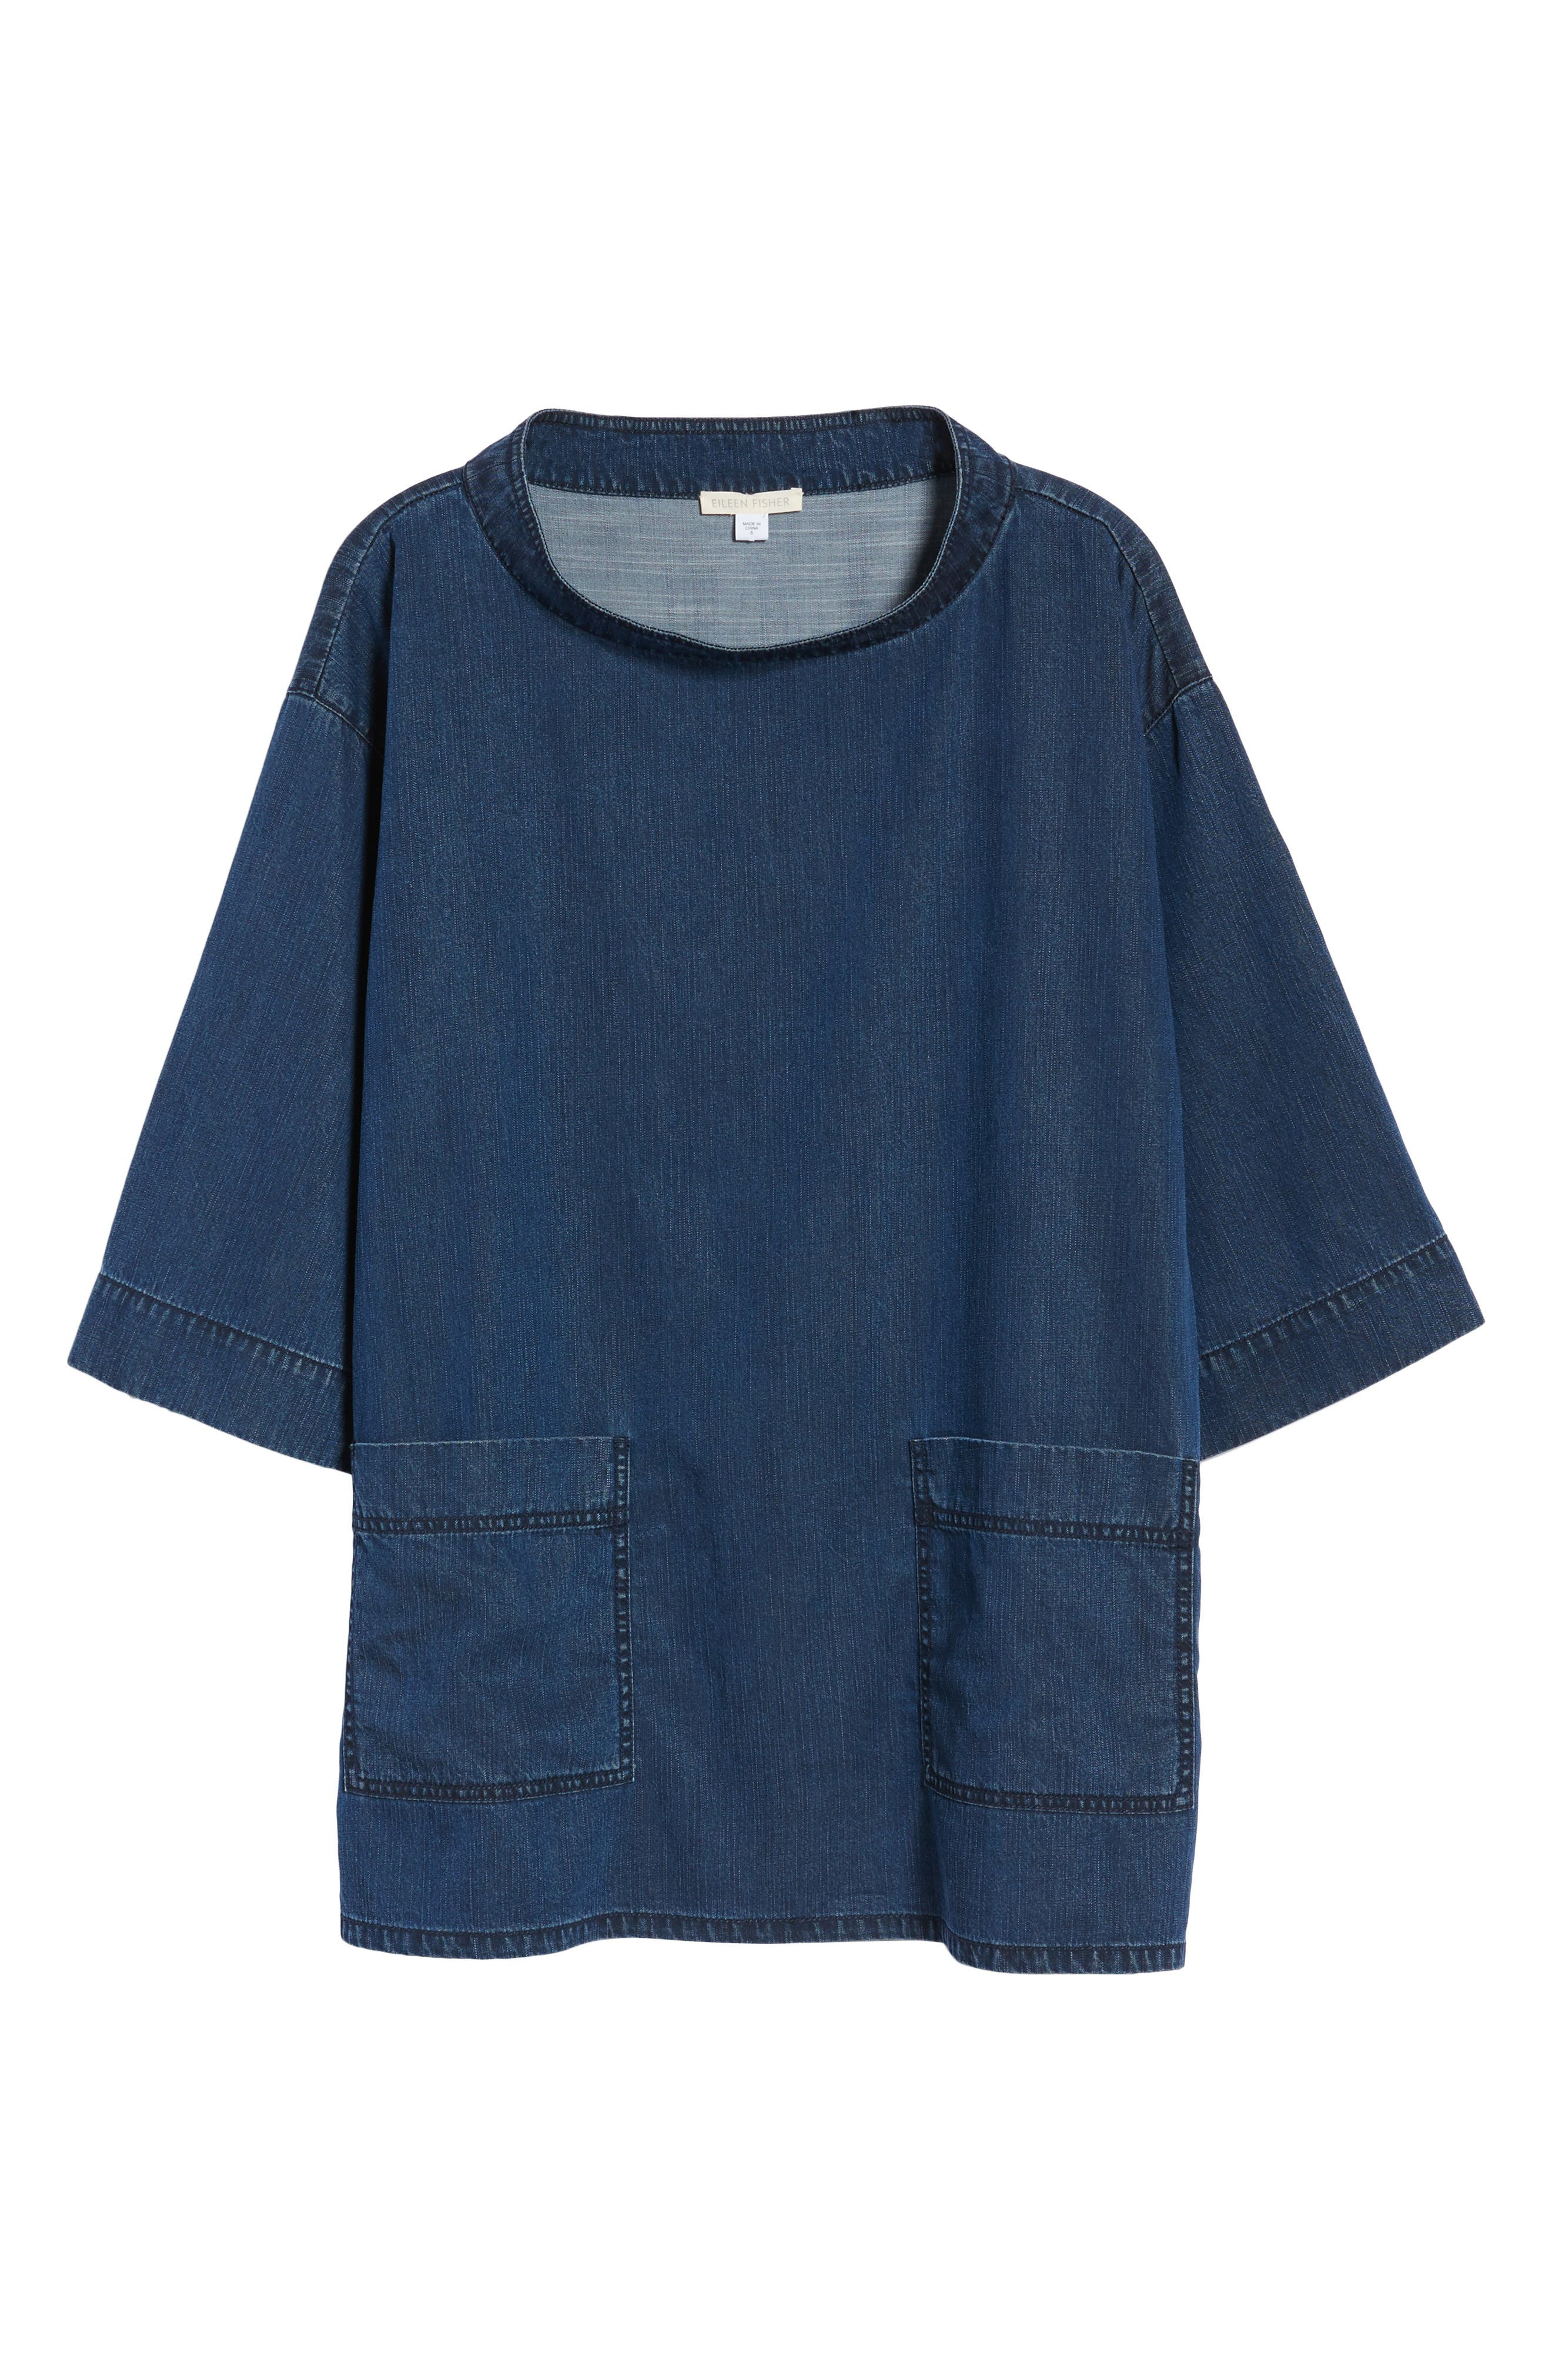 Boxy Soft Cotton Top,                             Alternate thumbnail 7, color,                             Midnight